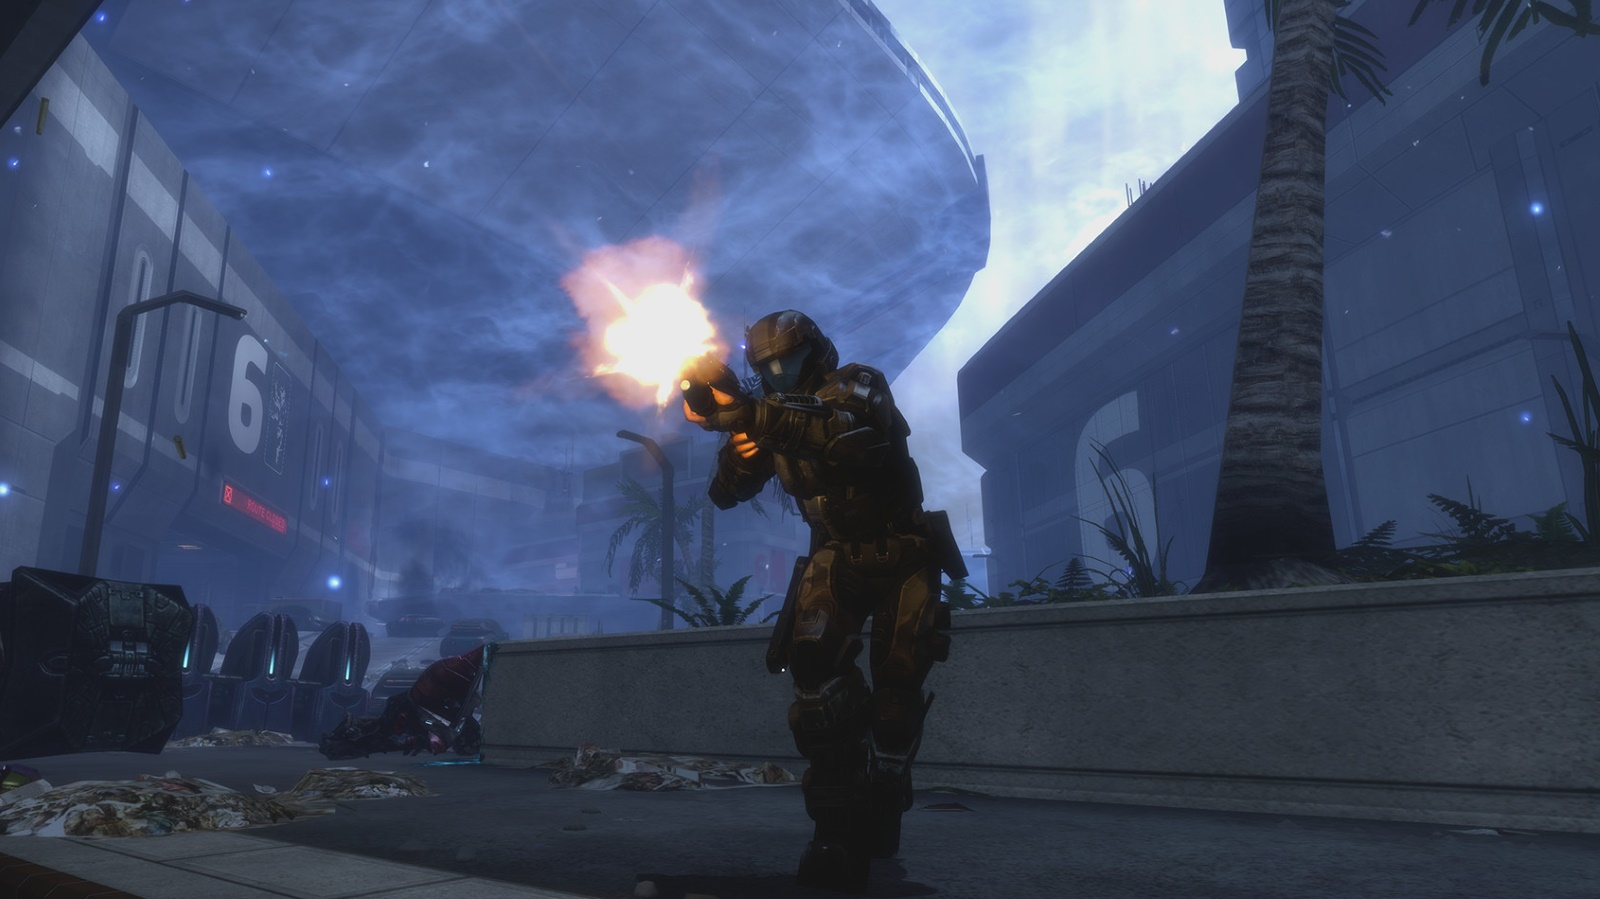 Halo The Master Chief Collection taking PC beta signups now | Rock